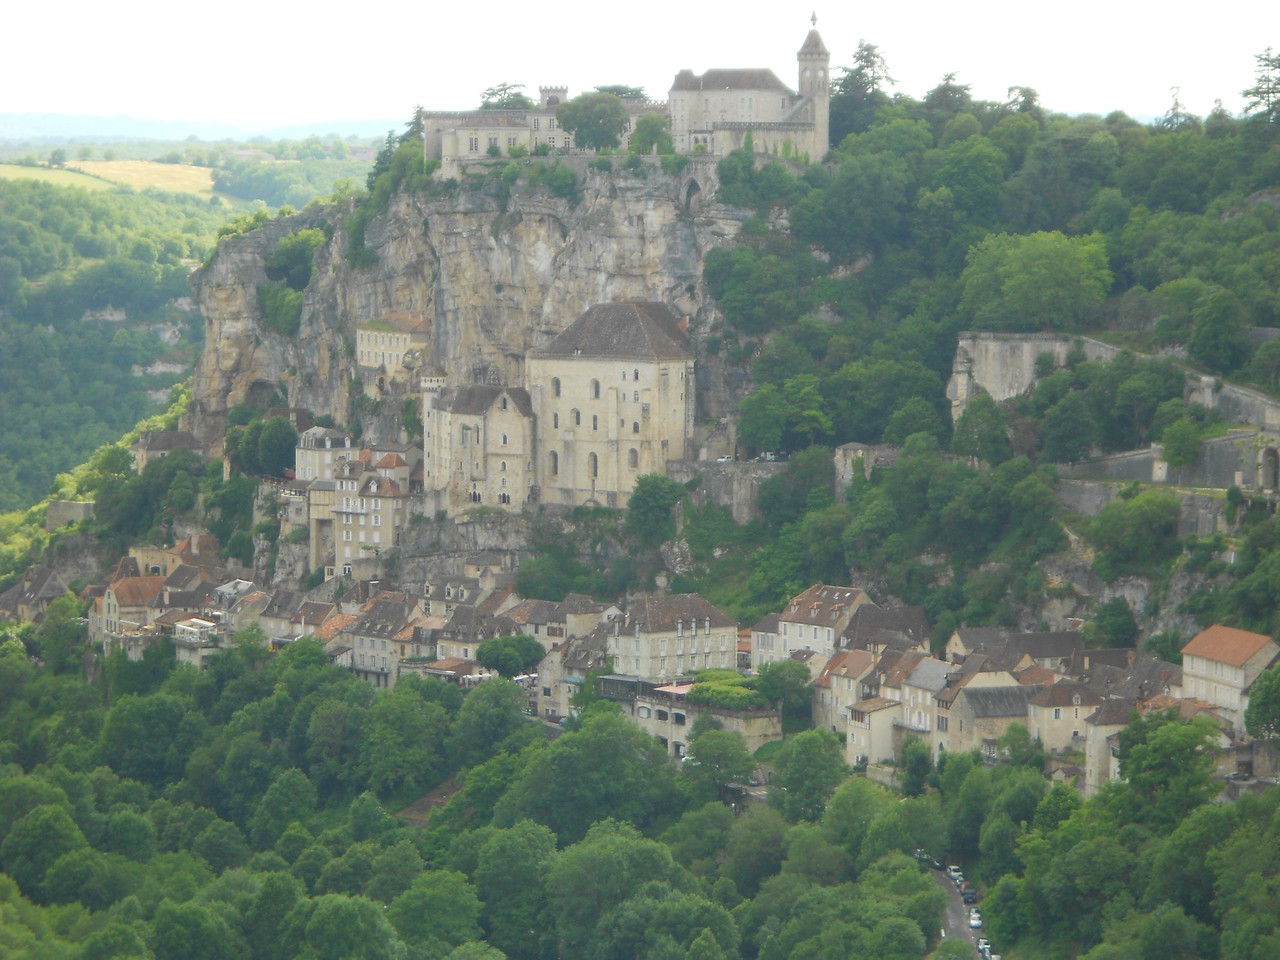 Rocamadour - another must-see for visitors - about and hour and a half drive.